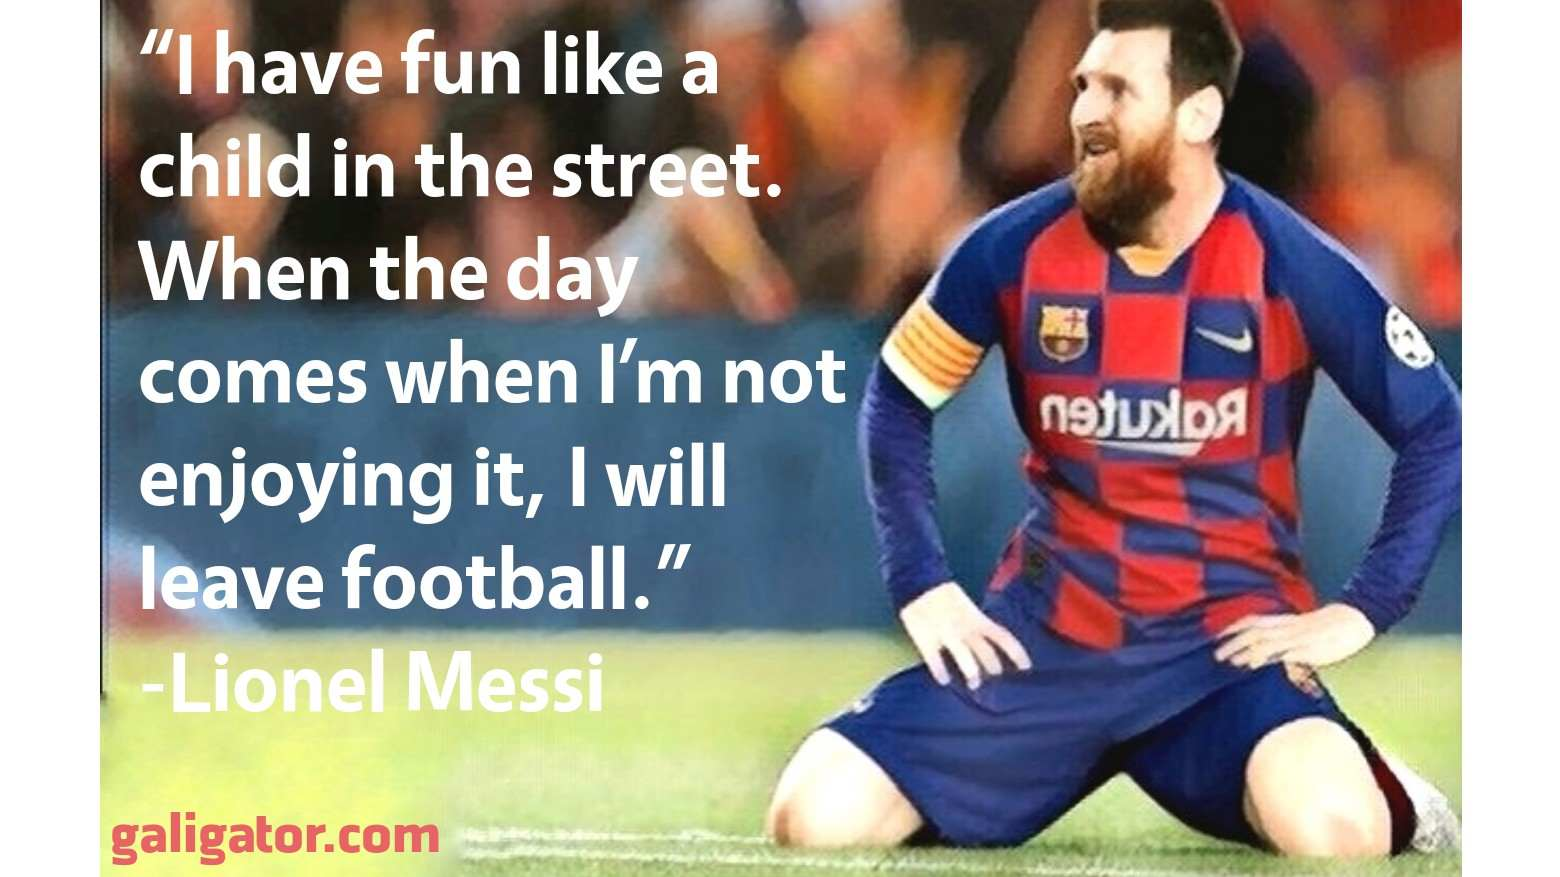 lionel messi quotes,leo messi quotes,messi inspirational quotes ,words about messi ,soccer quotes messi,lionel messi motivation ,what people say about messi,best quotes about lionel messi ,messi motivational quotes ,messi birthday quotes,fc barcelona quotes,barca quotes ,messi thoughts,messi captions